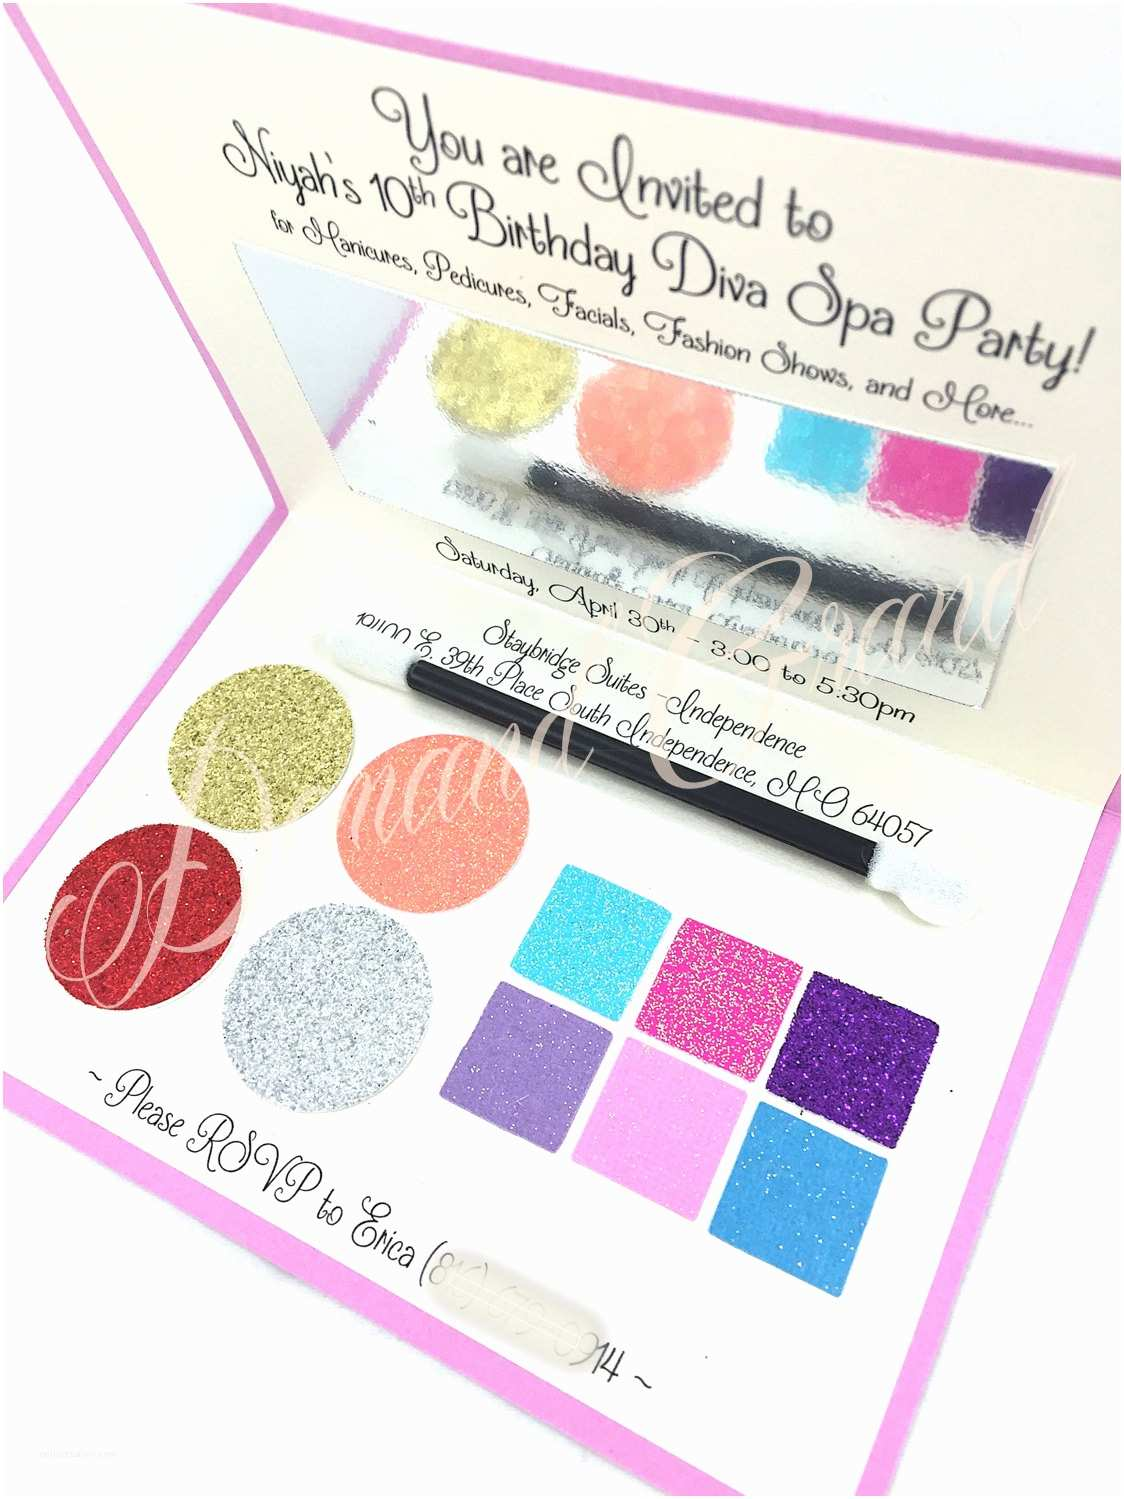 Pamper Party Invitations Spa Party Invitation Looks Like A Makeup Pact Perfect